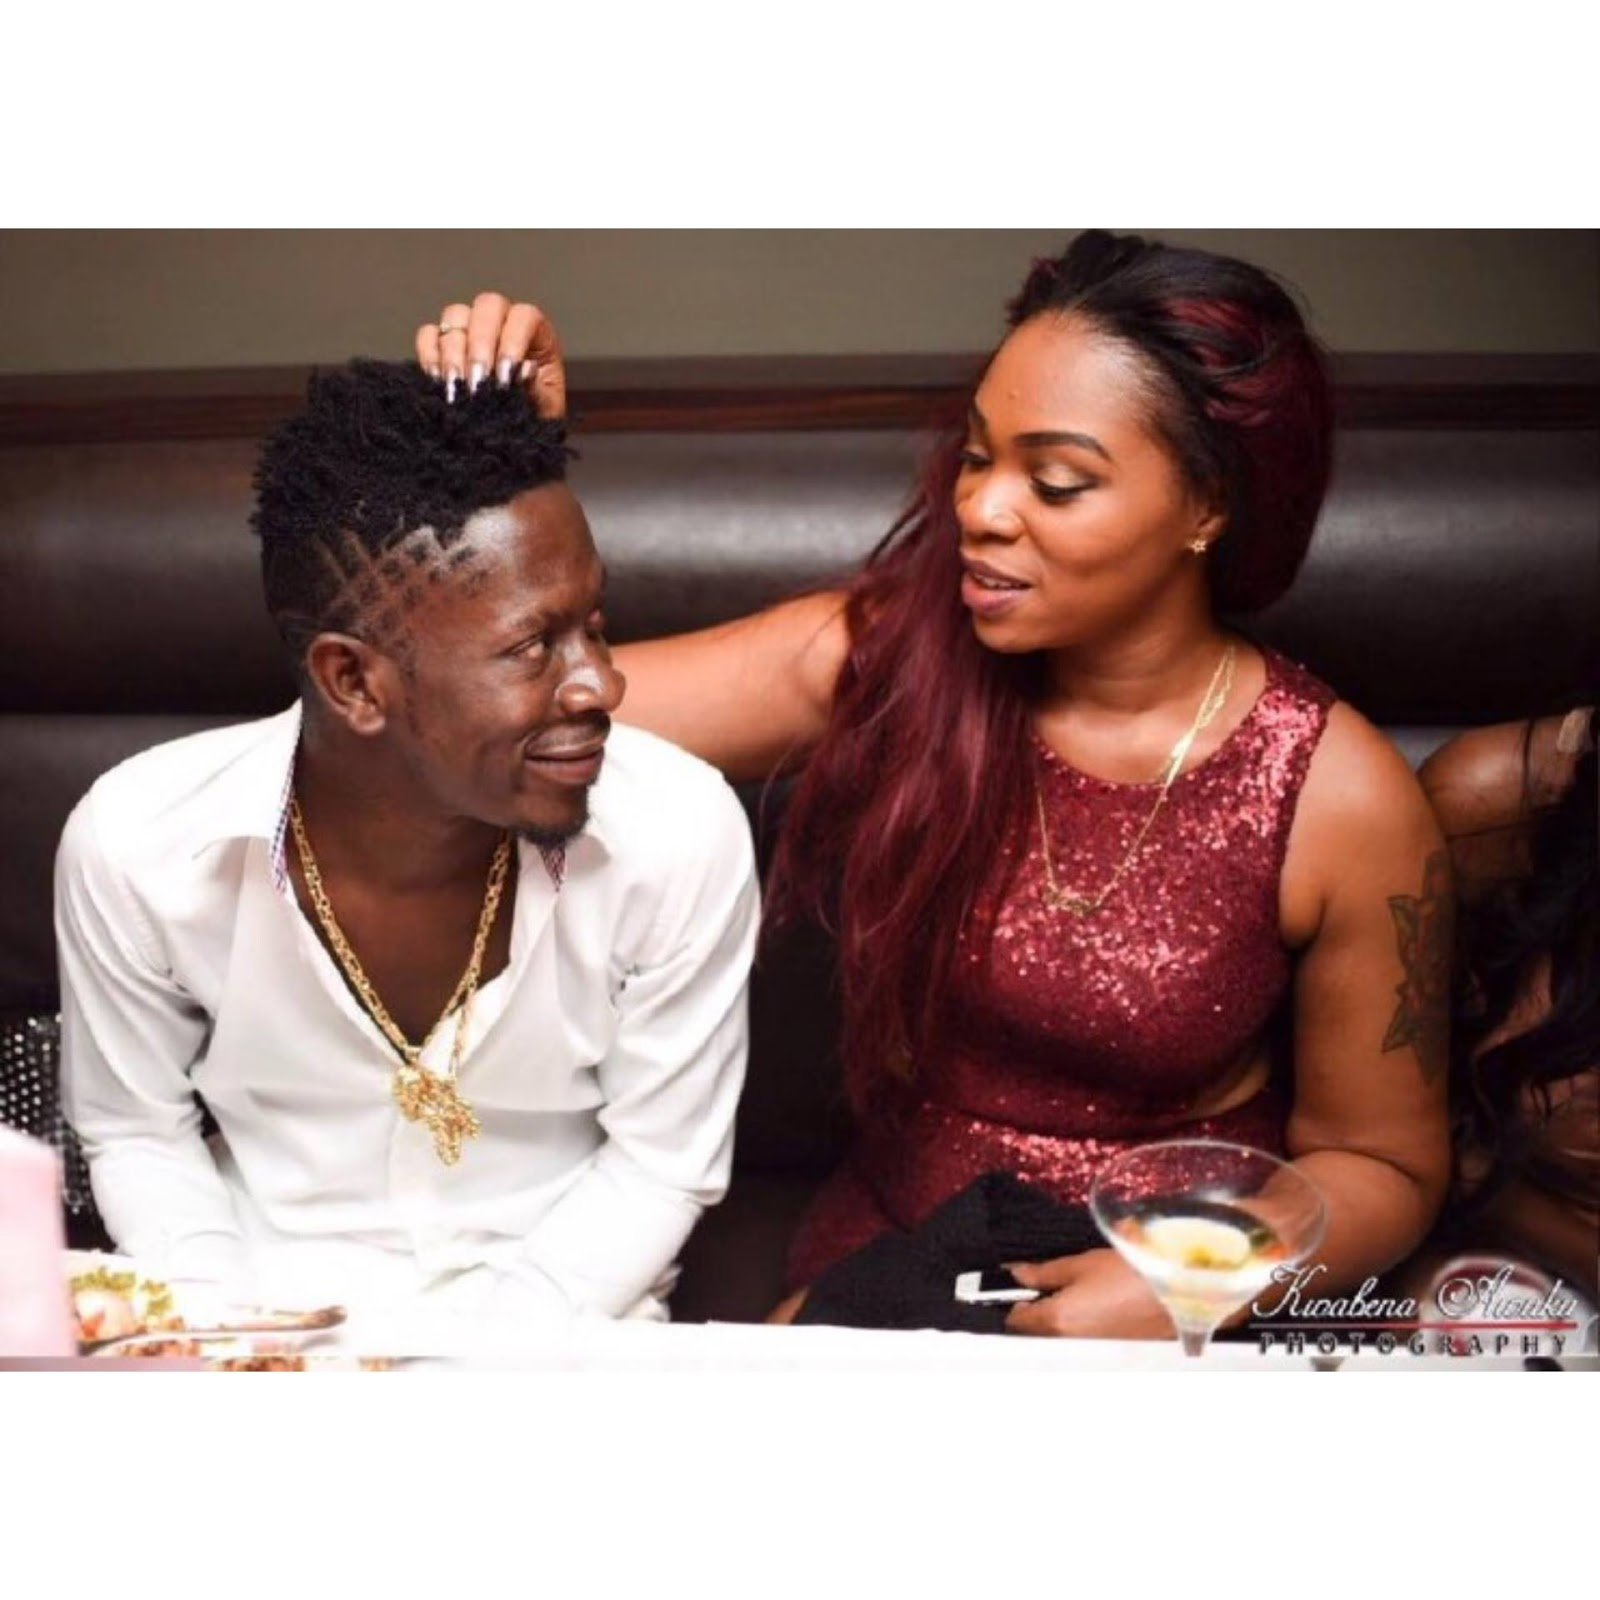 I'm single and free from oppression - Shatta Michy declares